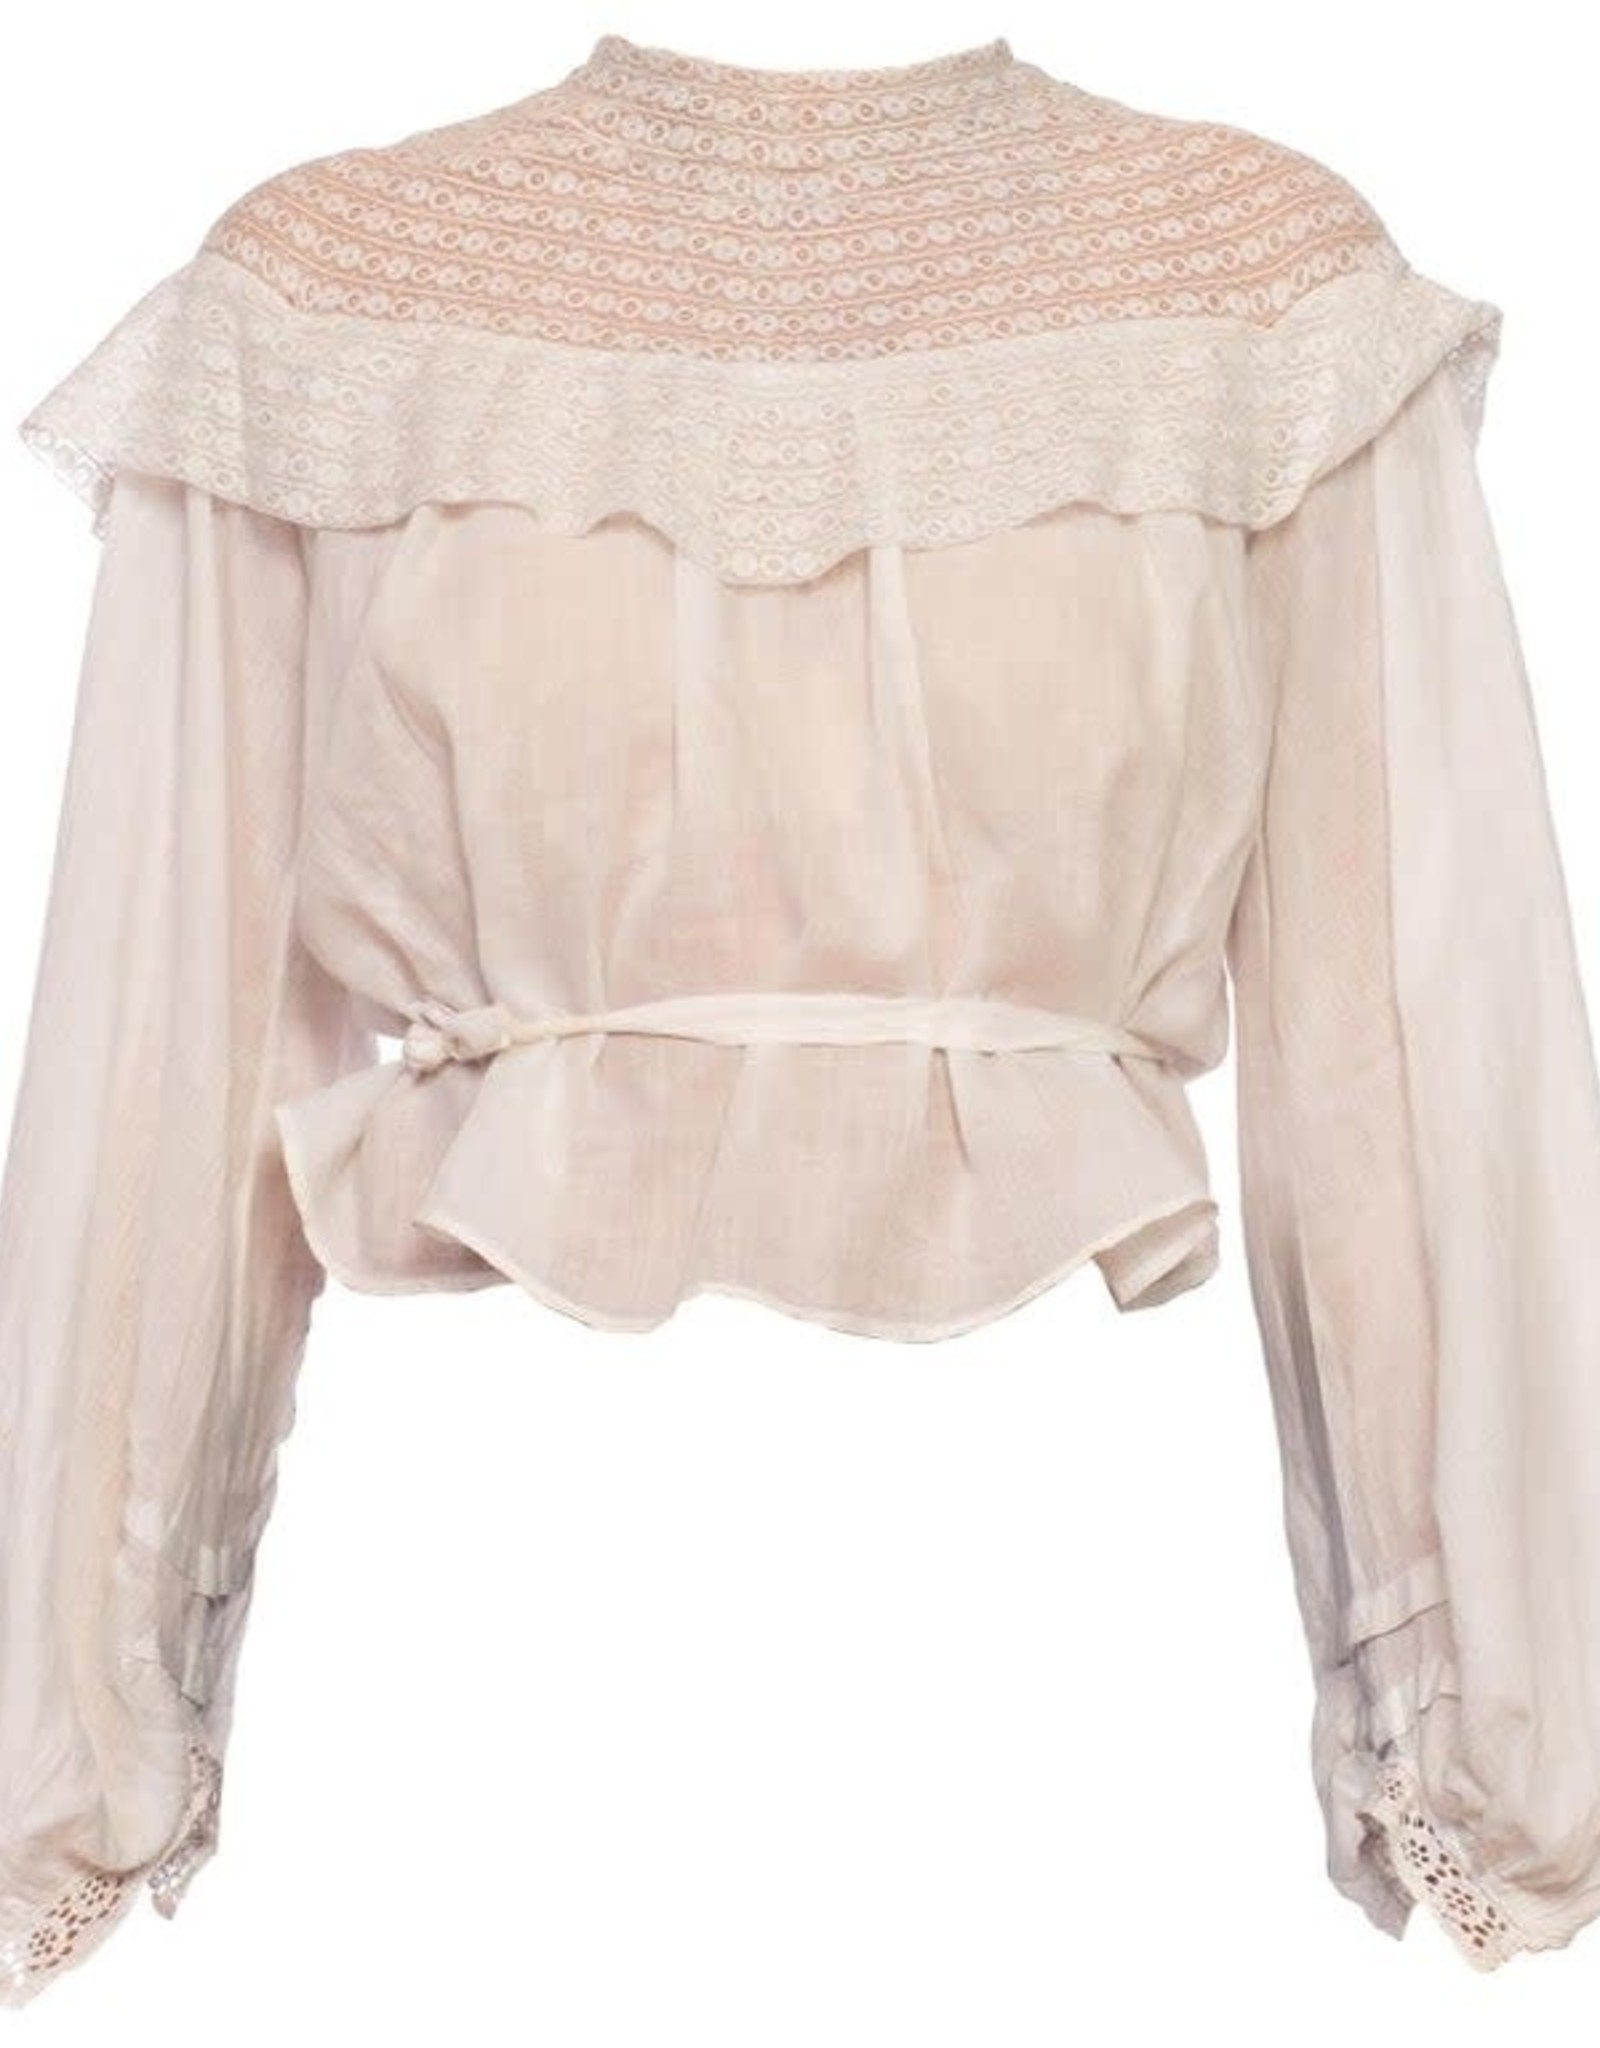 Wyld Blue Vintage White Cotton Voile & Tape Lace Swan Neck Blouse with Bishop Sleeves